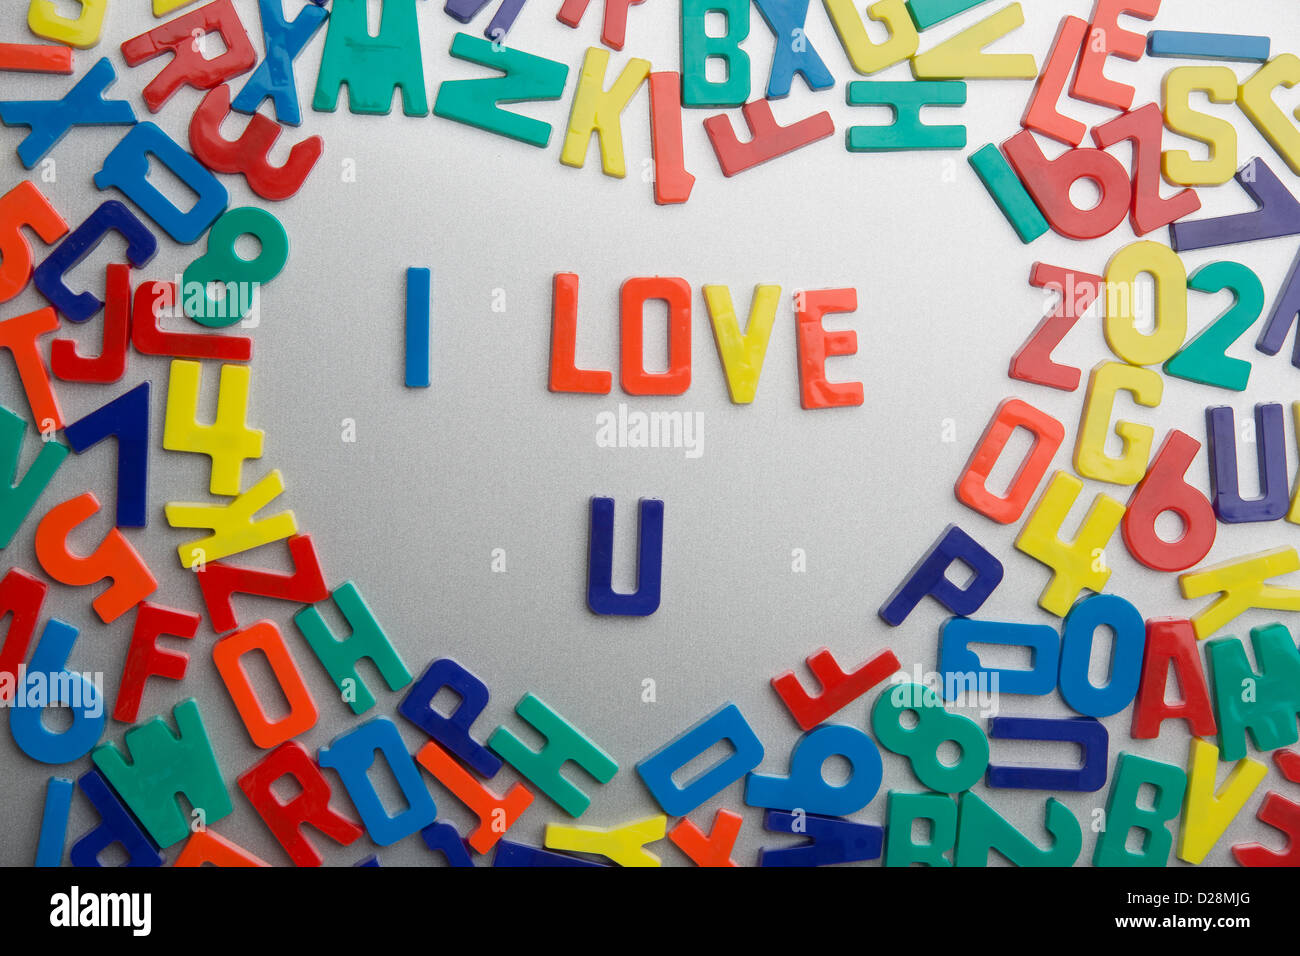 'I Love U' - Refrigerator magnets spell messages out of a jumble of letters - Stock Image